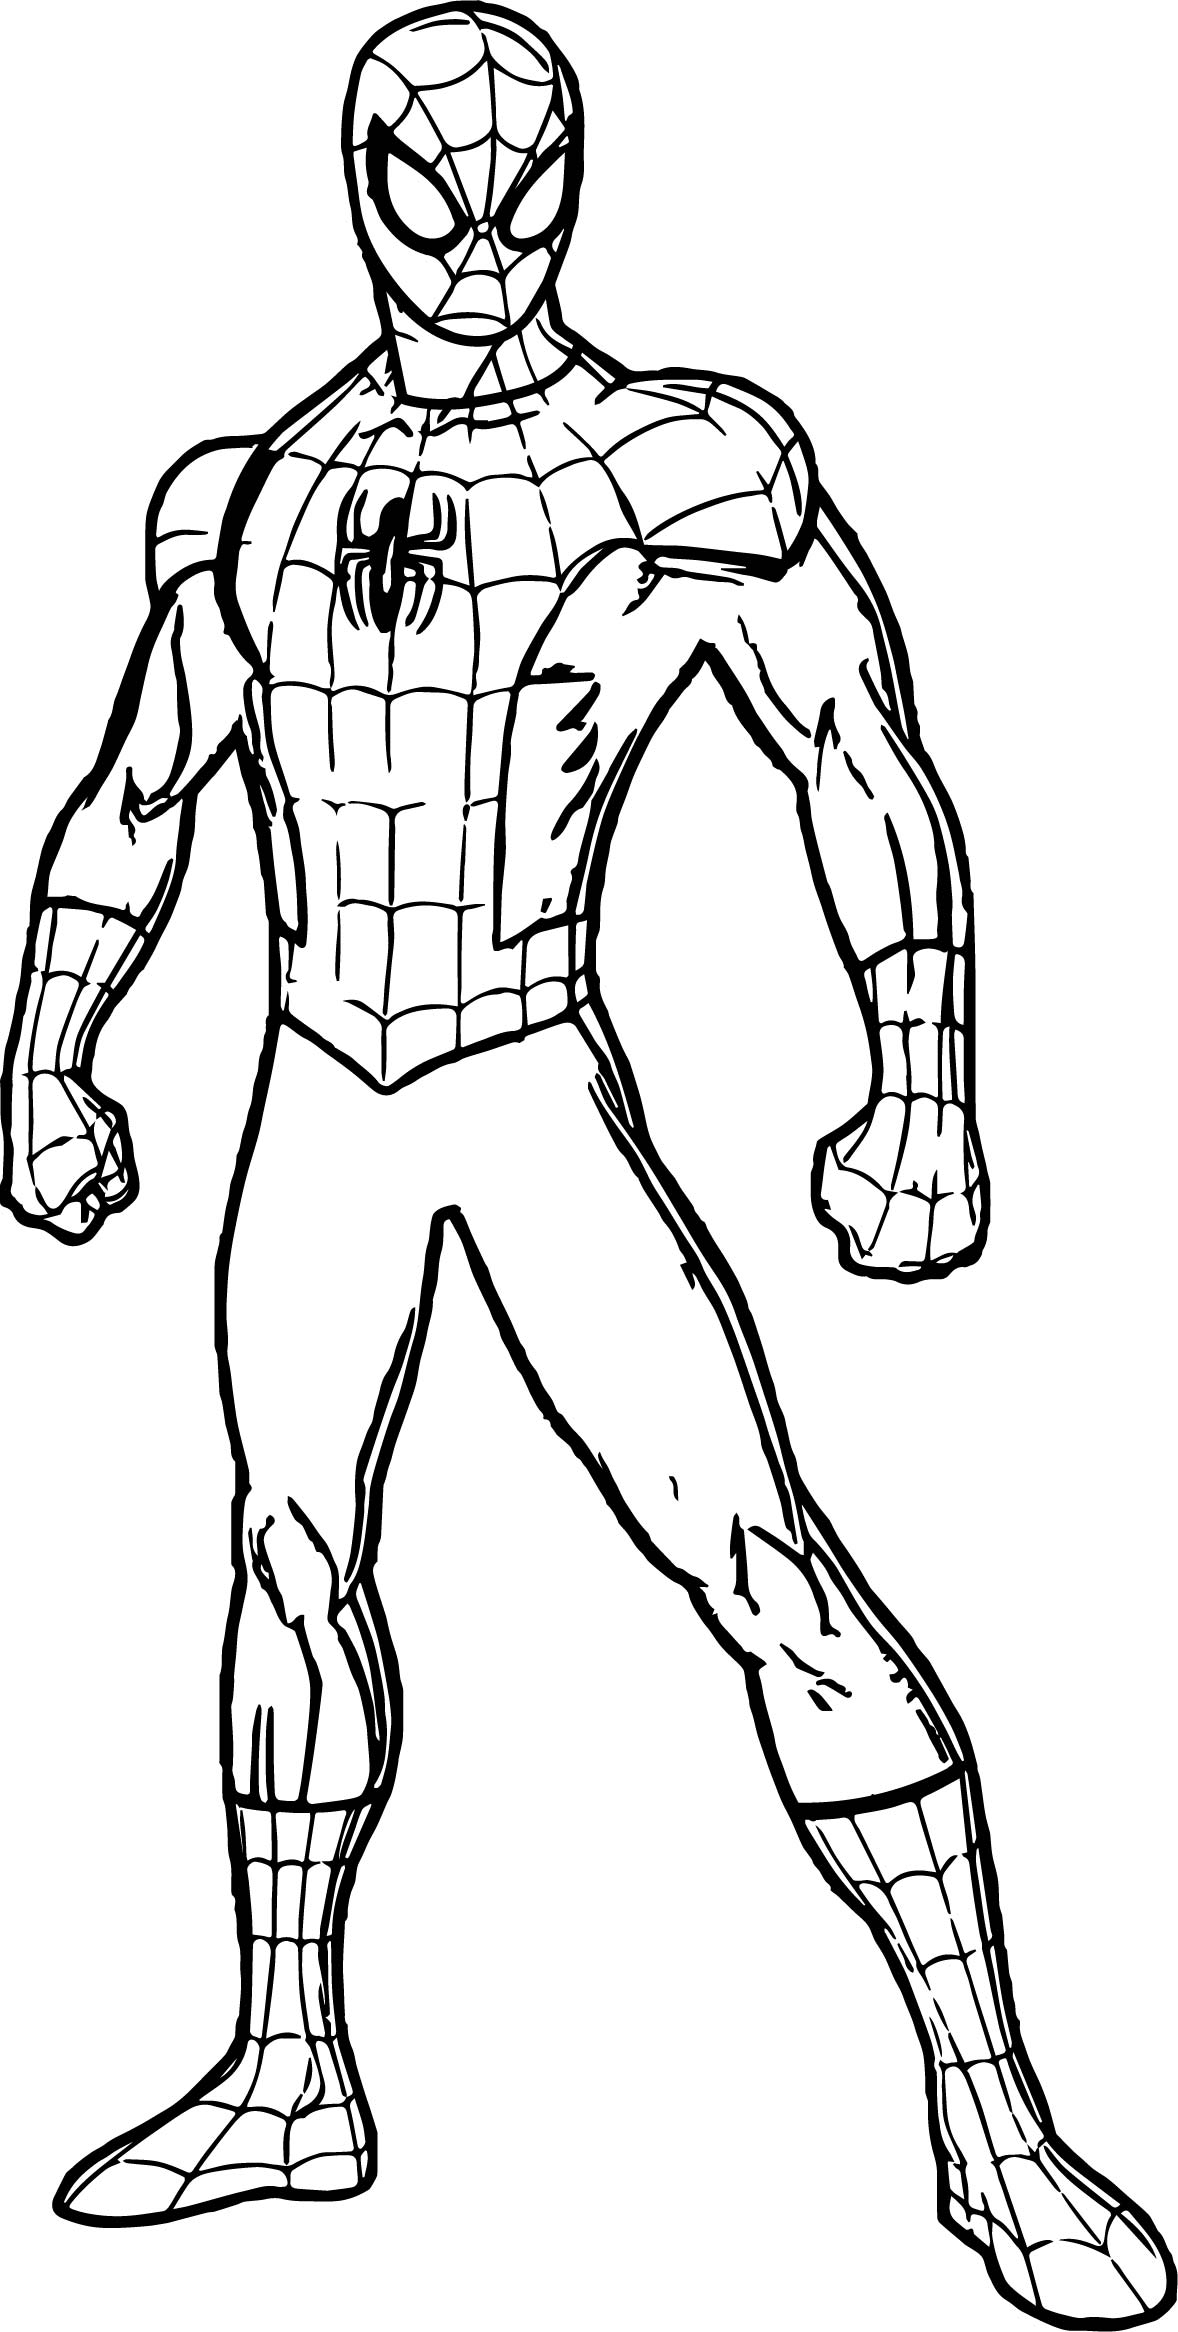 Spidey spider man coloring page for Coloring pages man